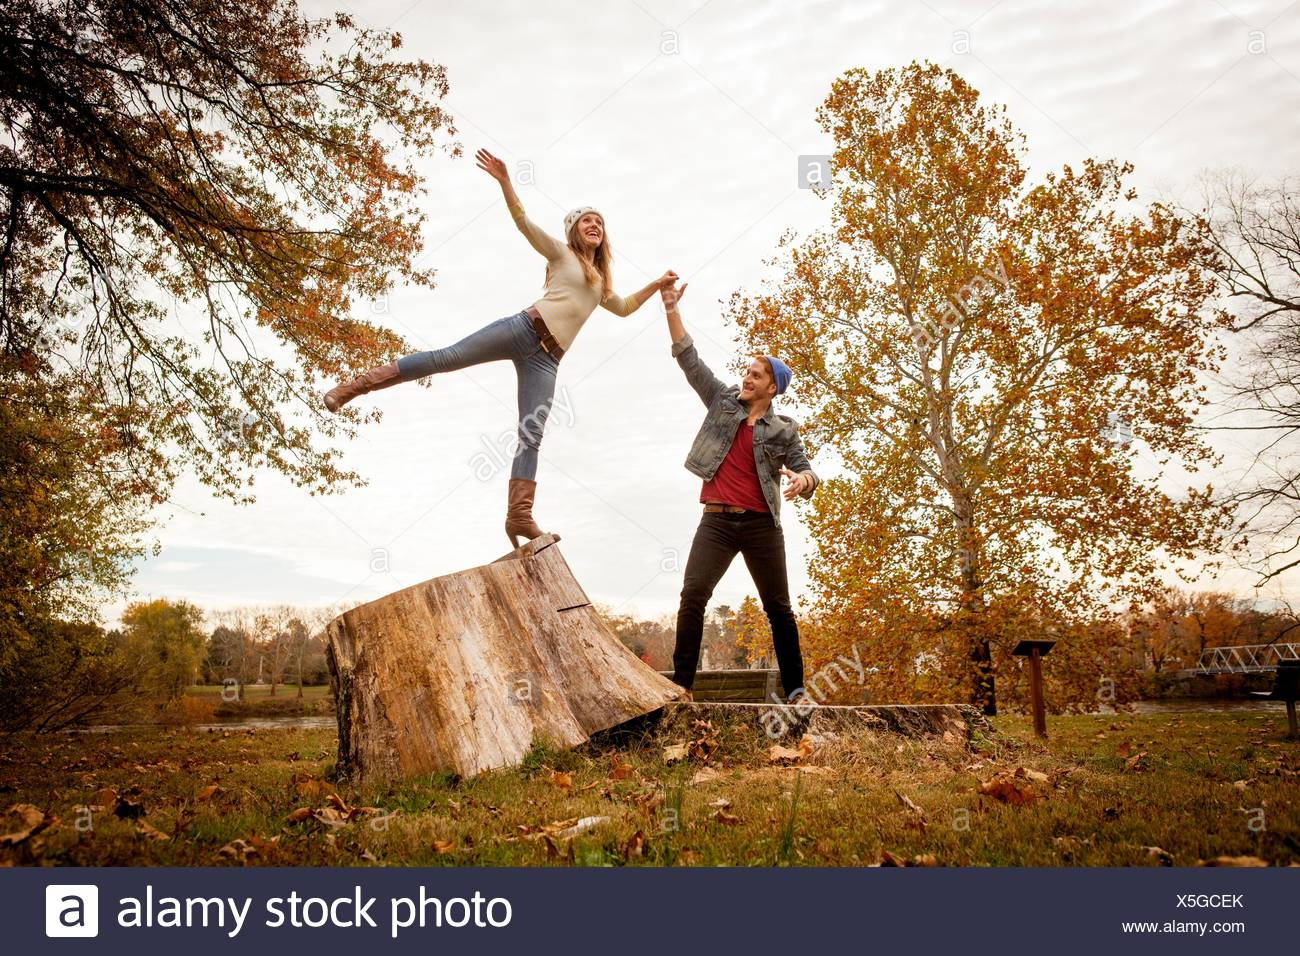 Young couple playing on tree stump in autumn park - Stock Image